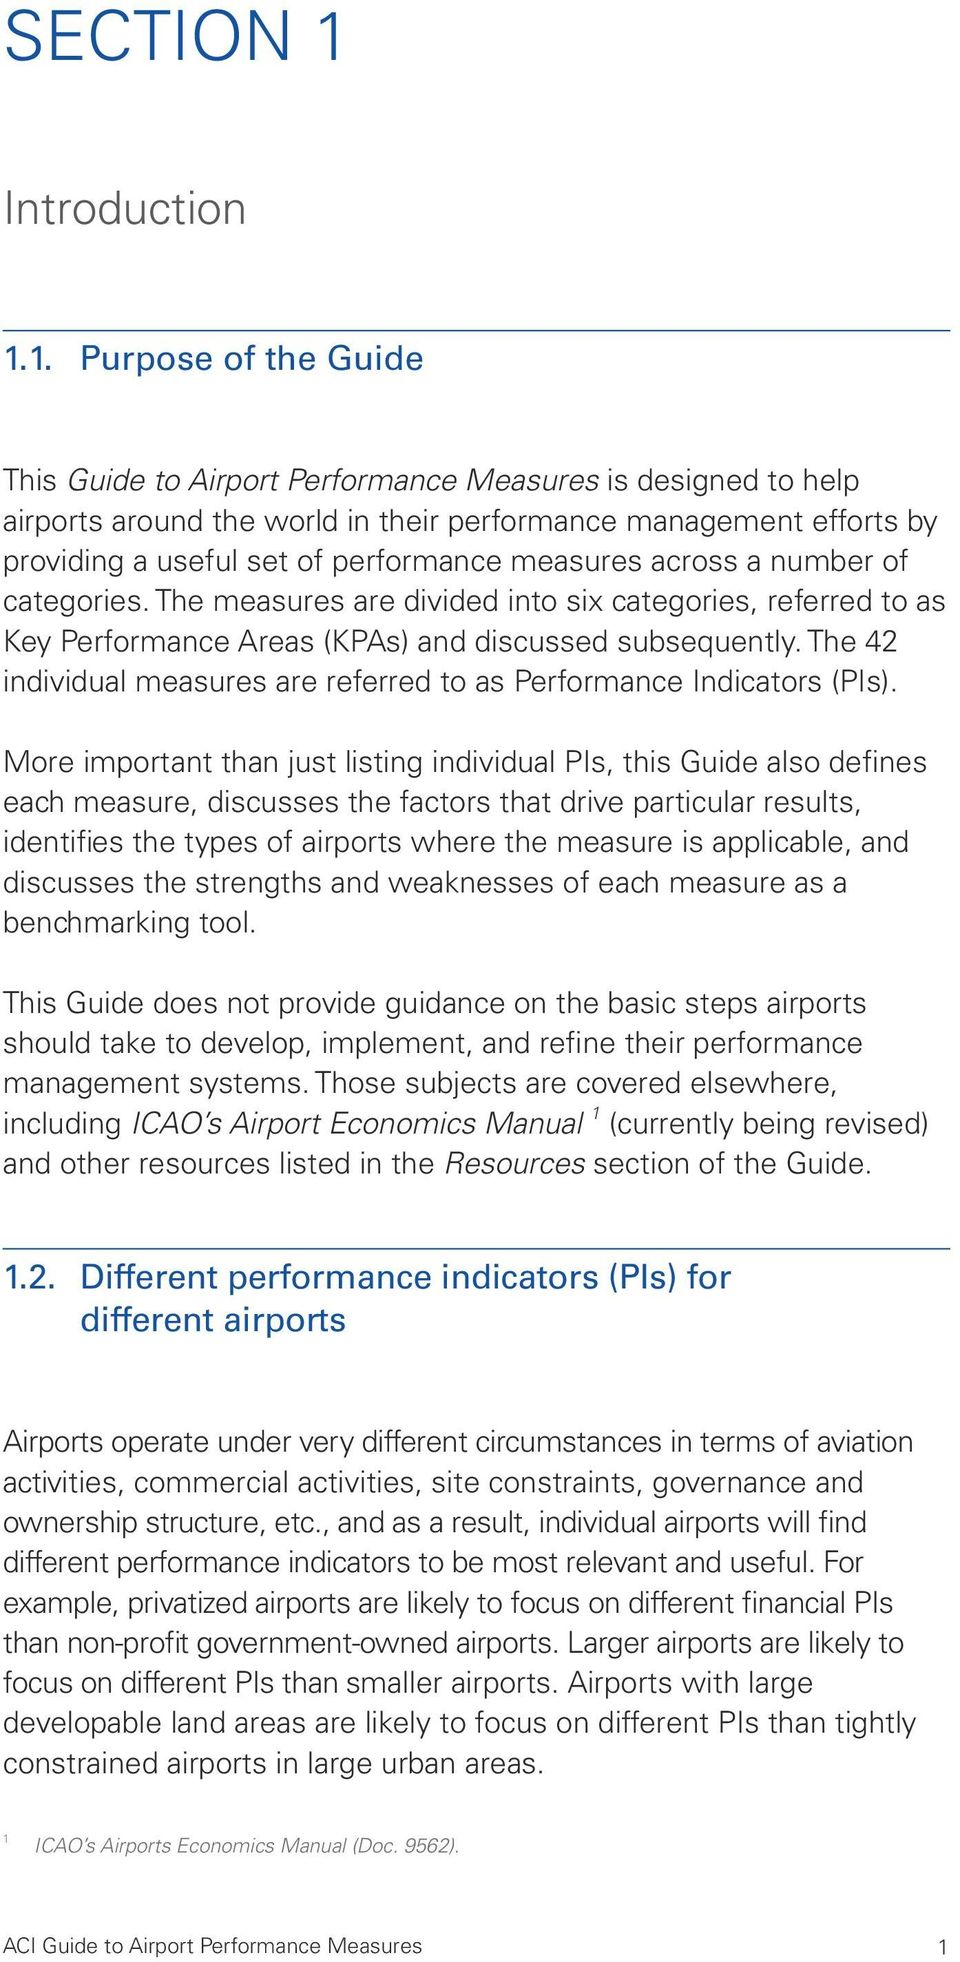 1. Purpose of the Guide This Guide to Airport Performance Measures is designed to help airports around the world in their performance management efforts by providing a useful set of performance